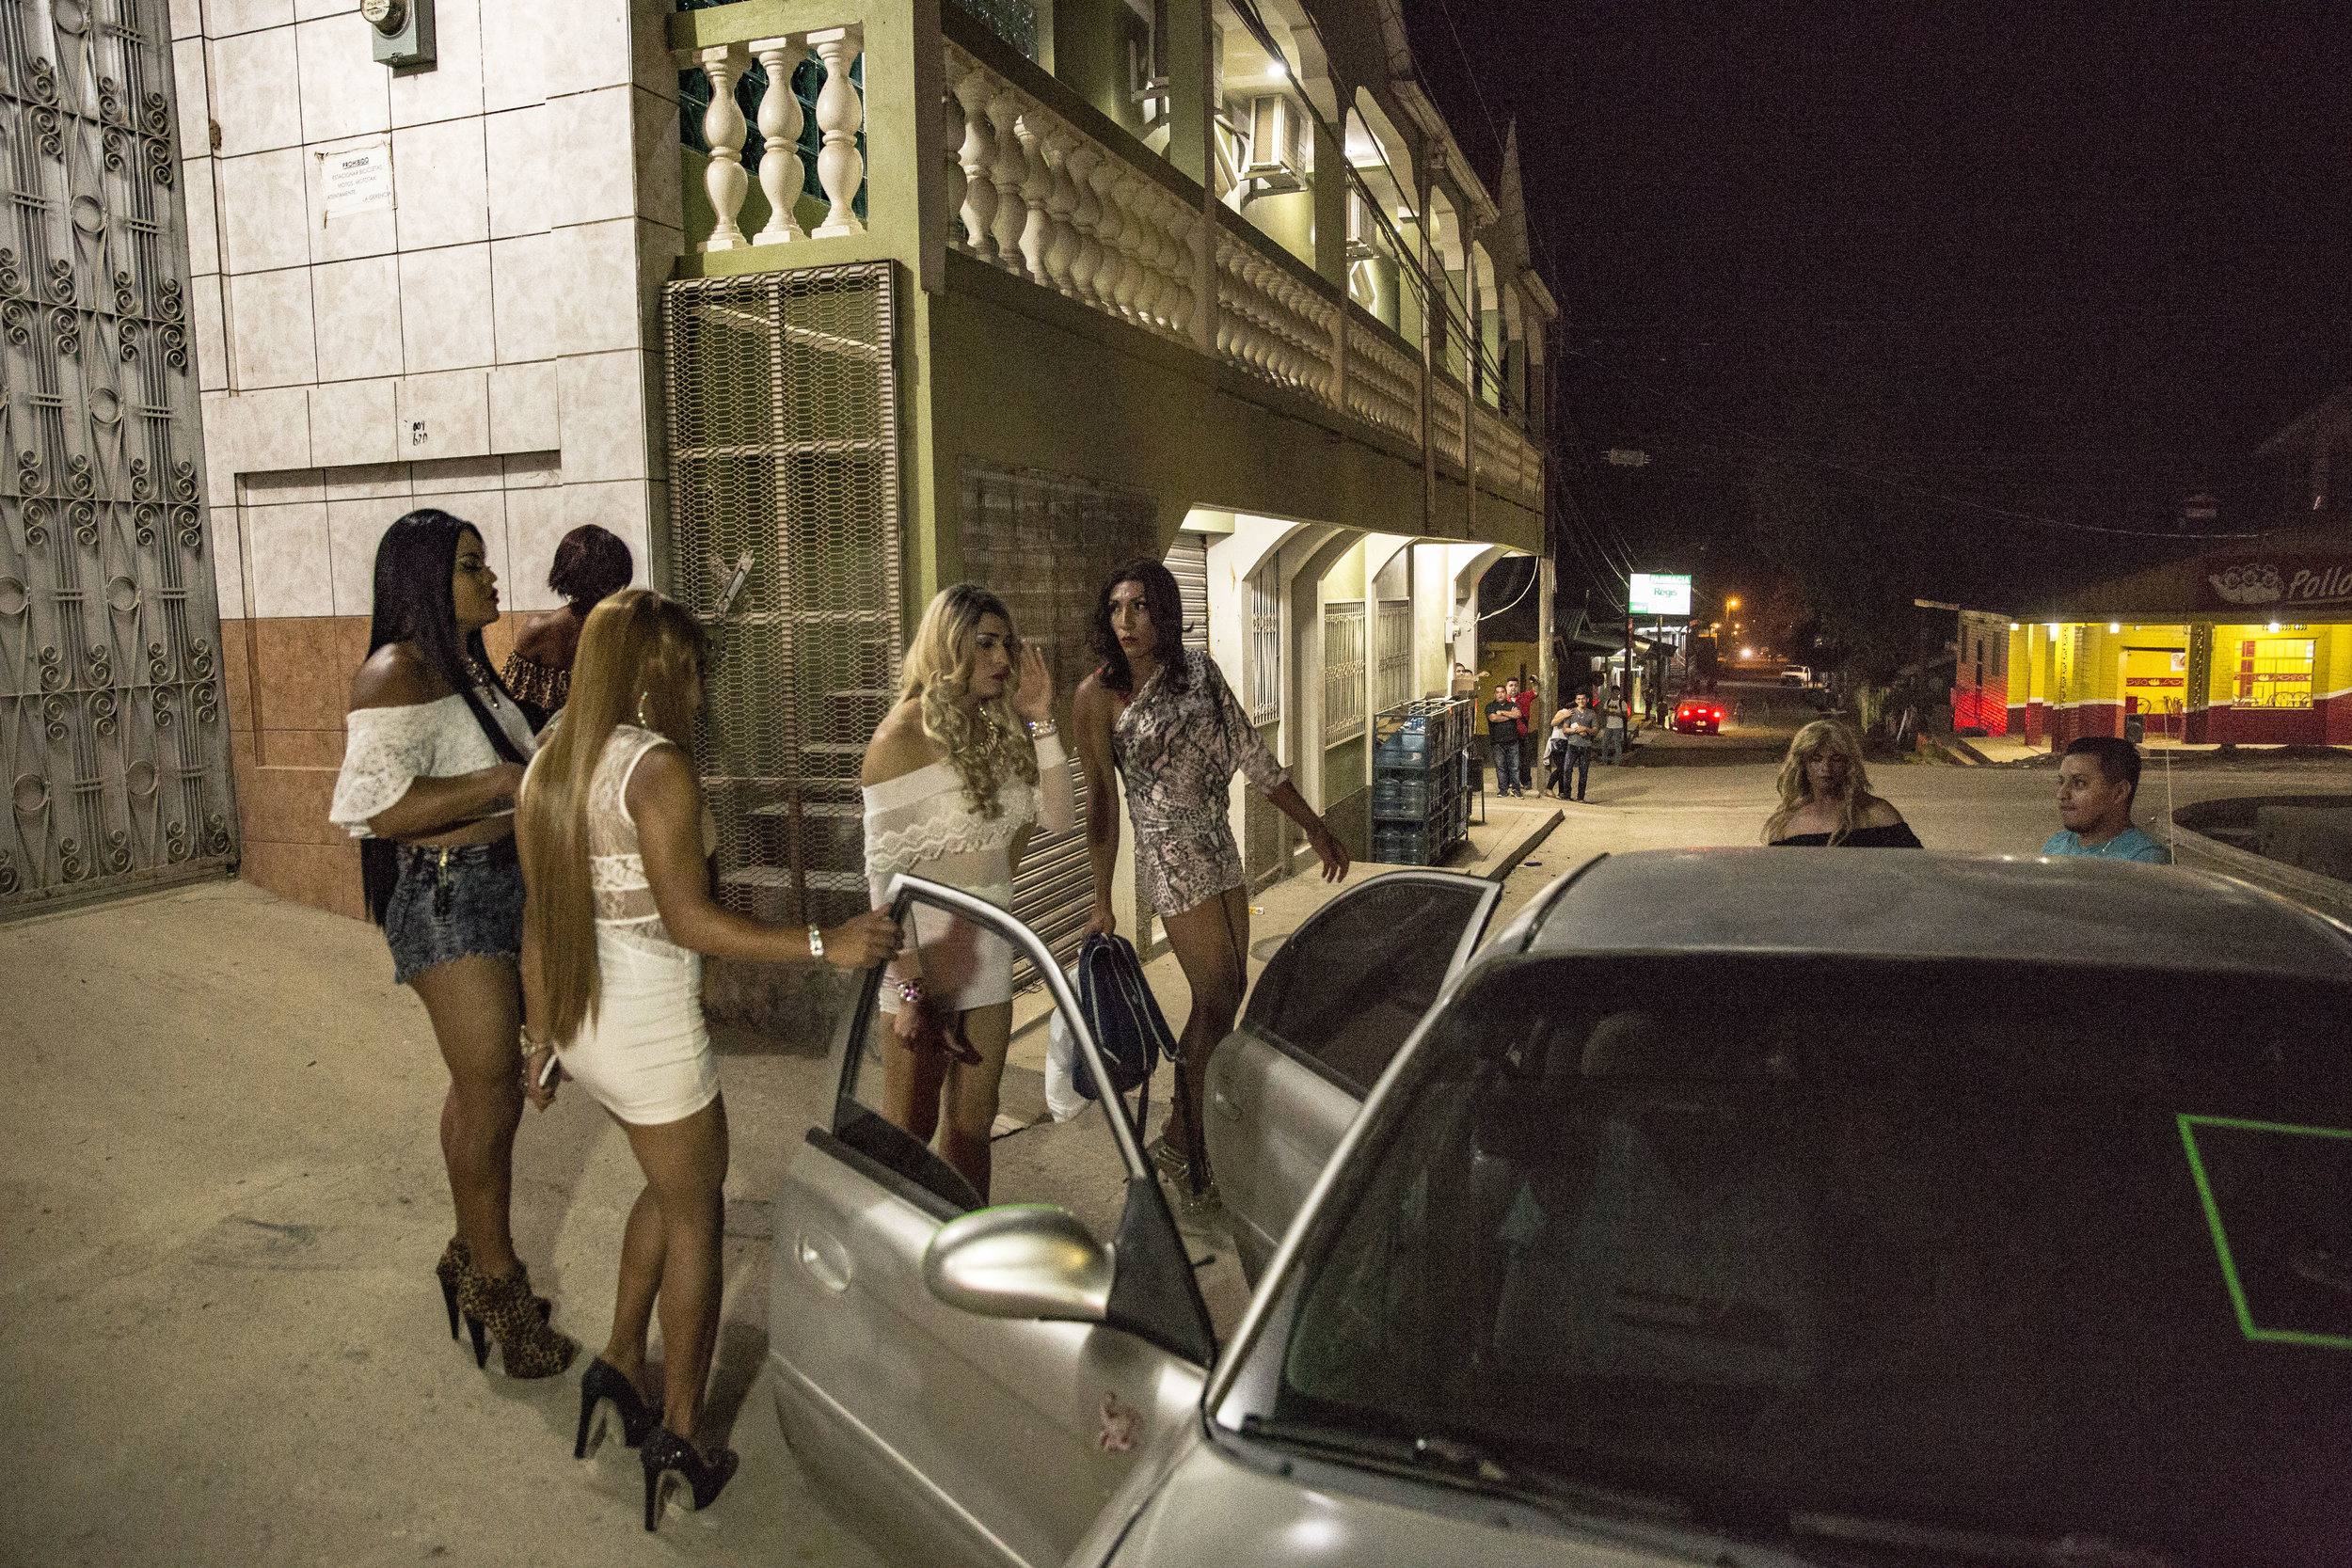 Briana and other friends, also transgender, head to a party while people of the small town watch them with curiosity.